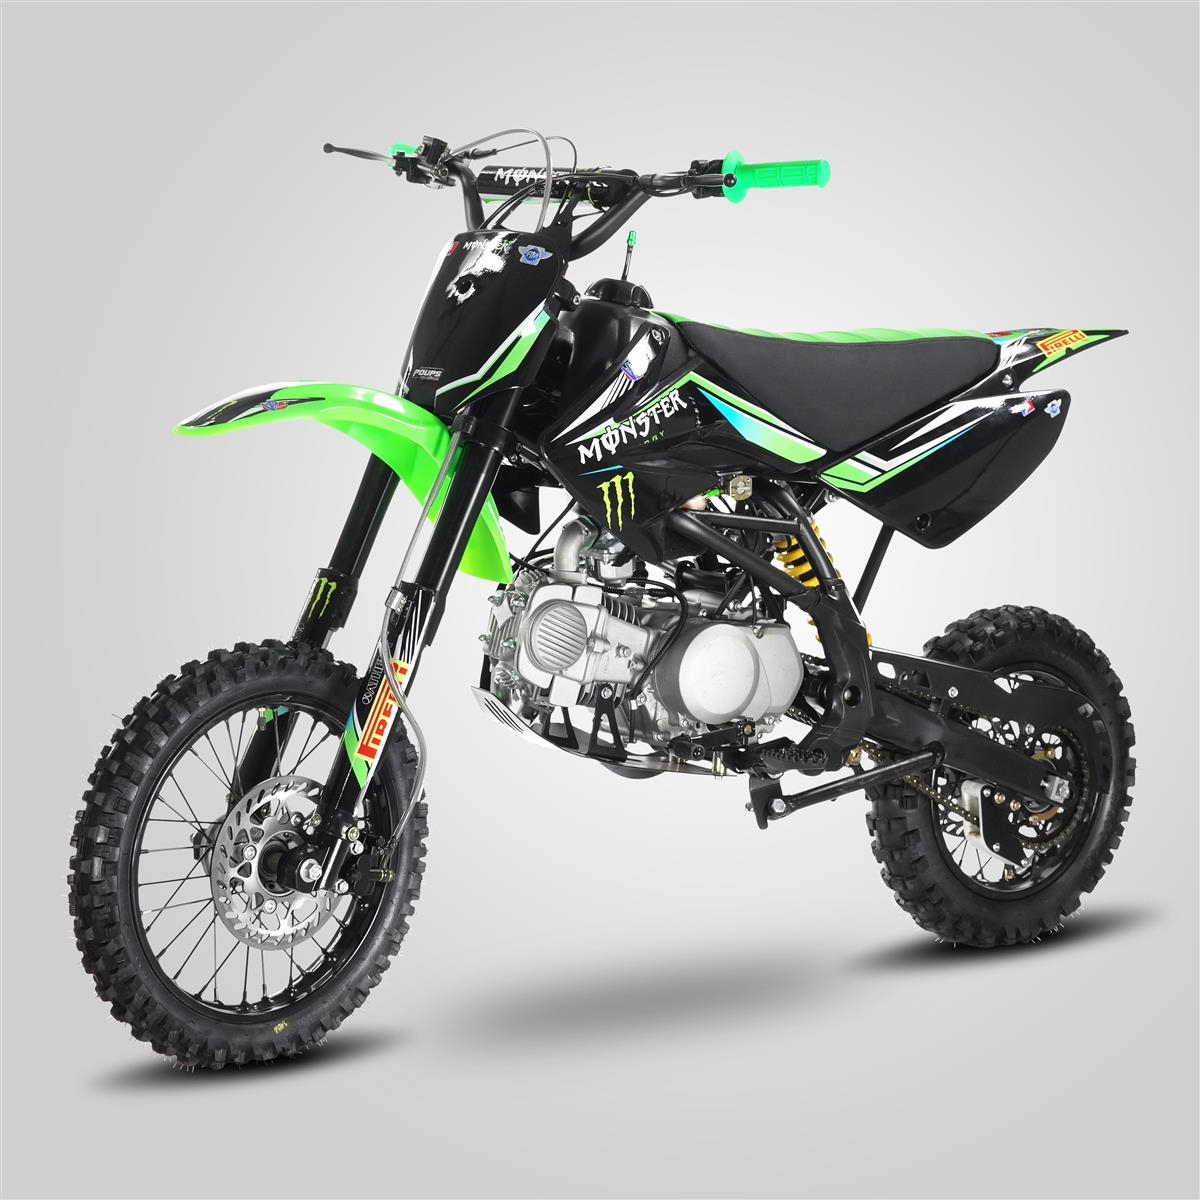 pit bike smx mx5 monster 125cc 12 14 smallmx dirt bike. Black Bedroom Furniture Sets. Home Design Ideas